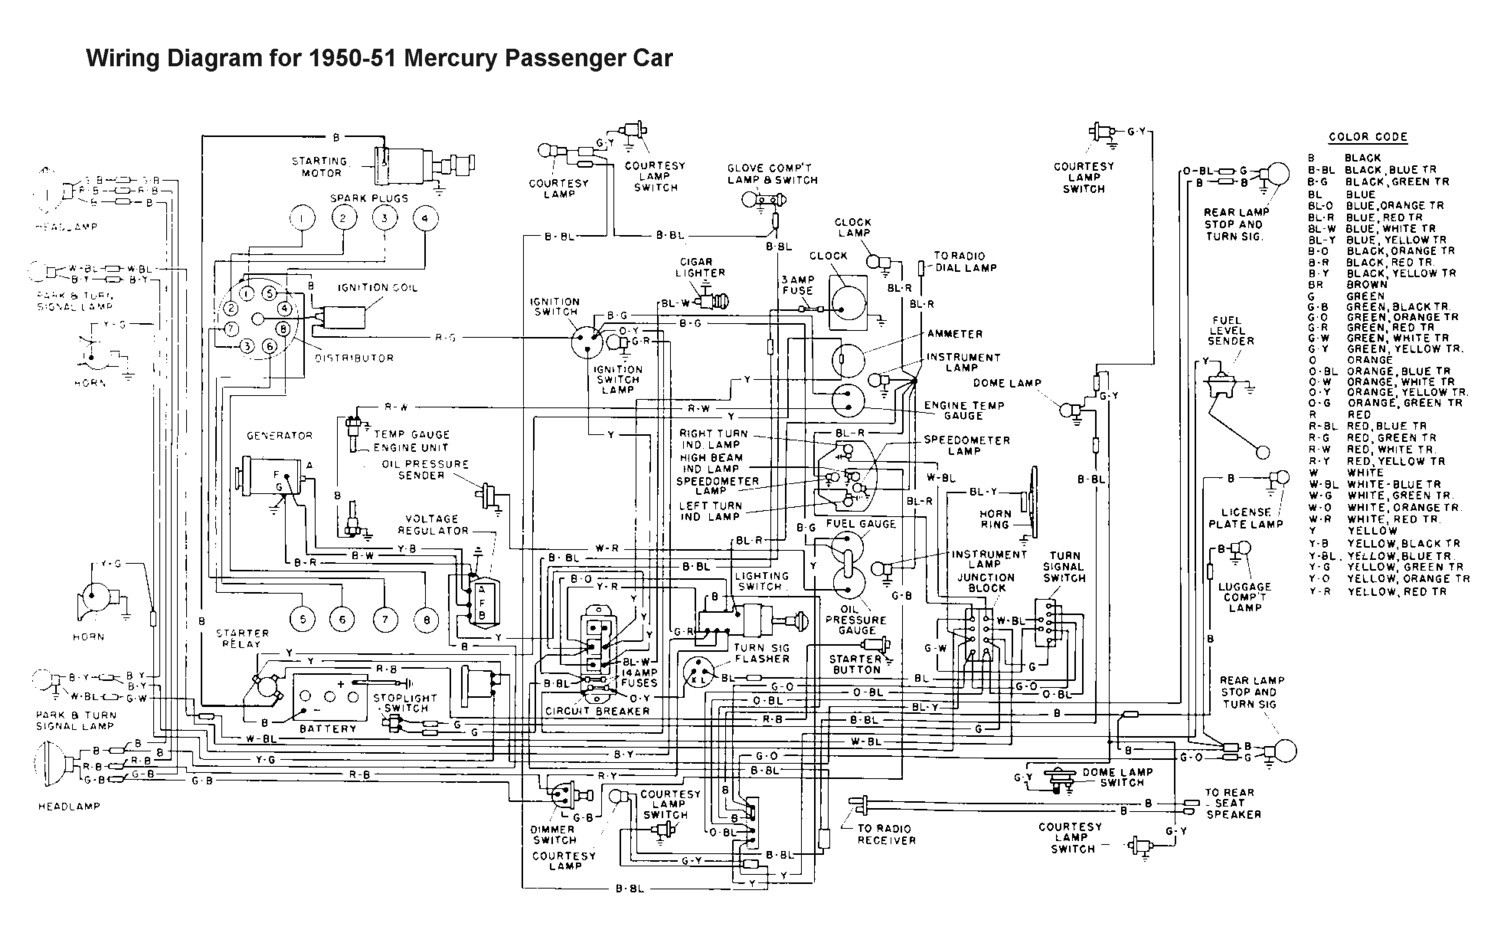 hight resolution of http vanpeltsales com fh web fh images fh electrical pics flathead electrical wiring1950 51merc jpg